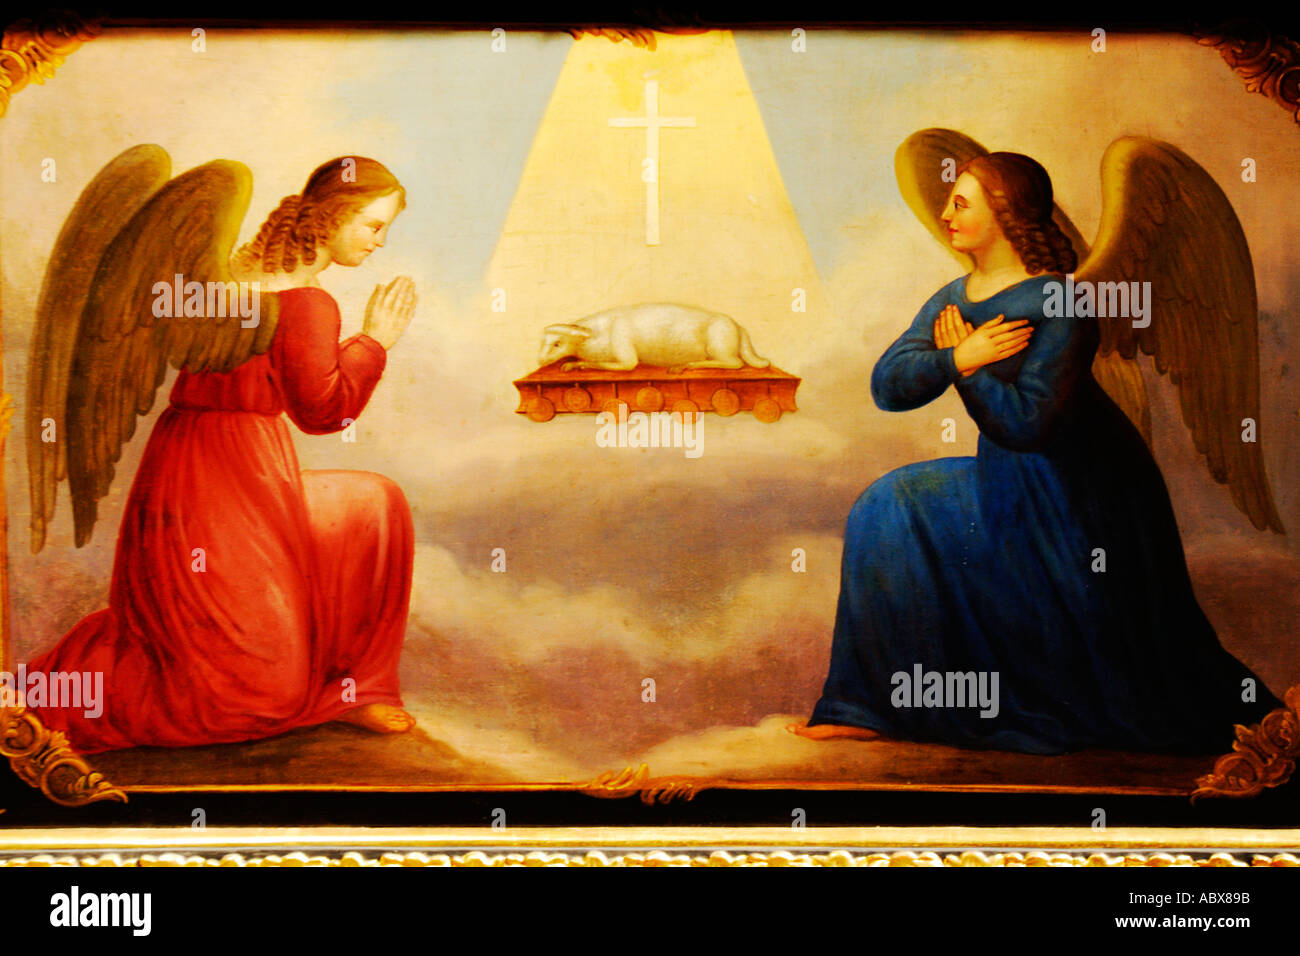 Religious Art, Painting of the Annunciation Stock Photo